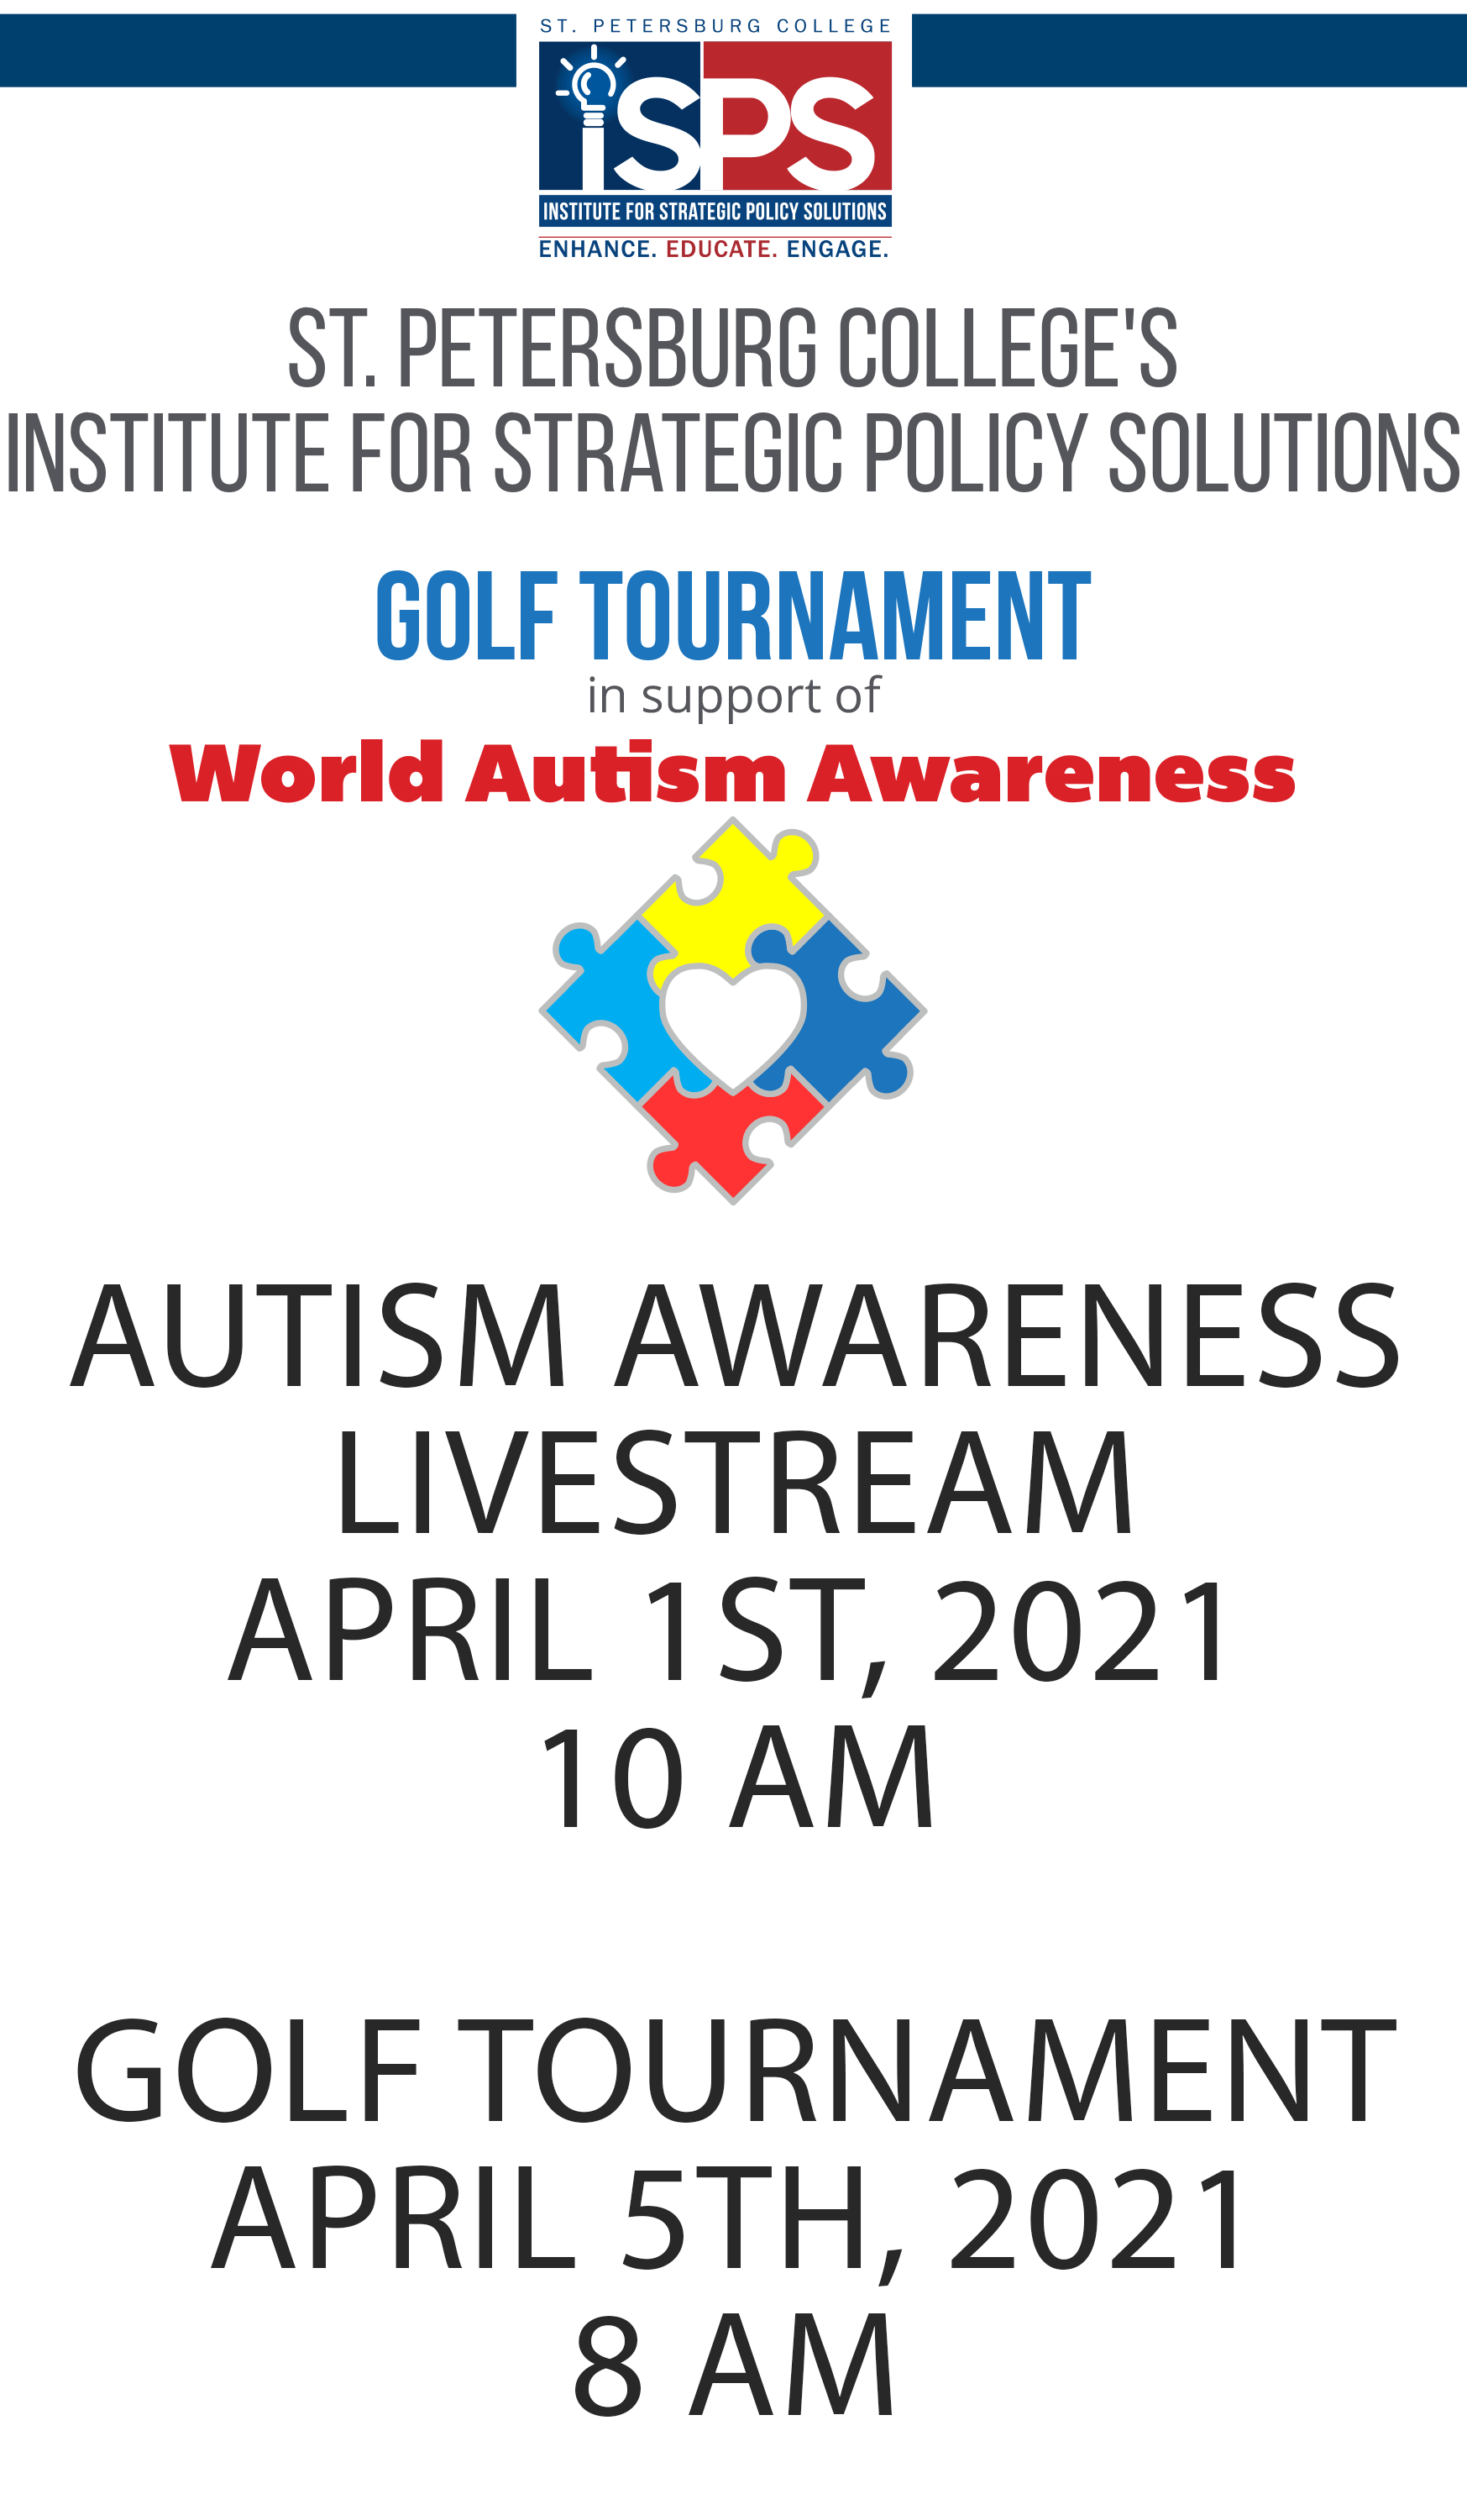 st. petersburg college's Institute for strategic Policy Solutions Golf Tournament in support of World Autism Awareness